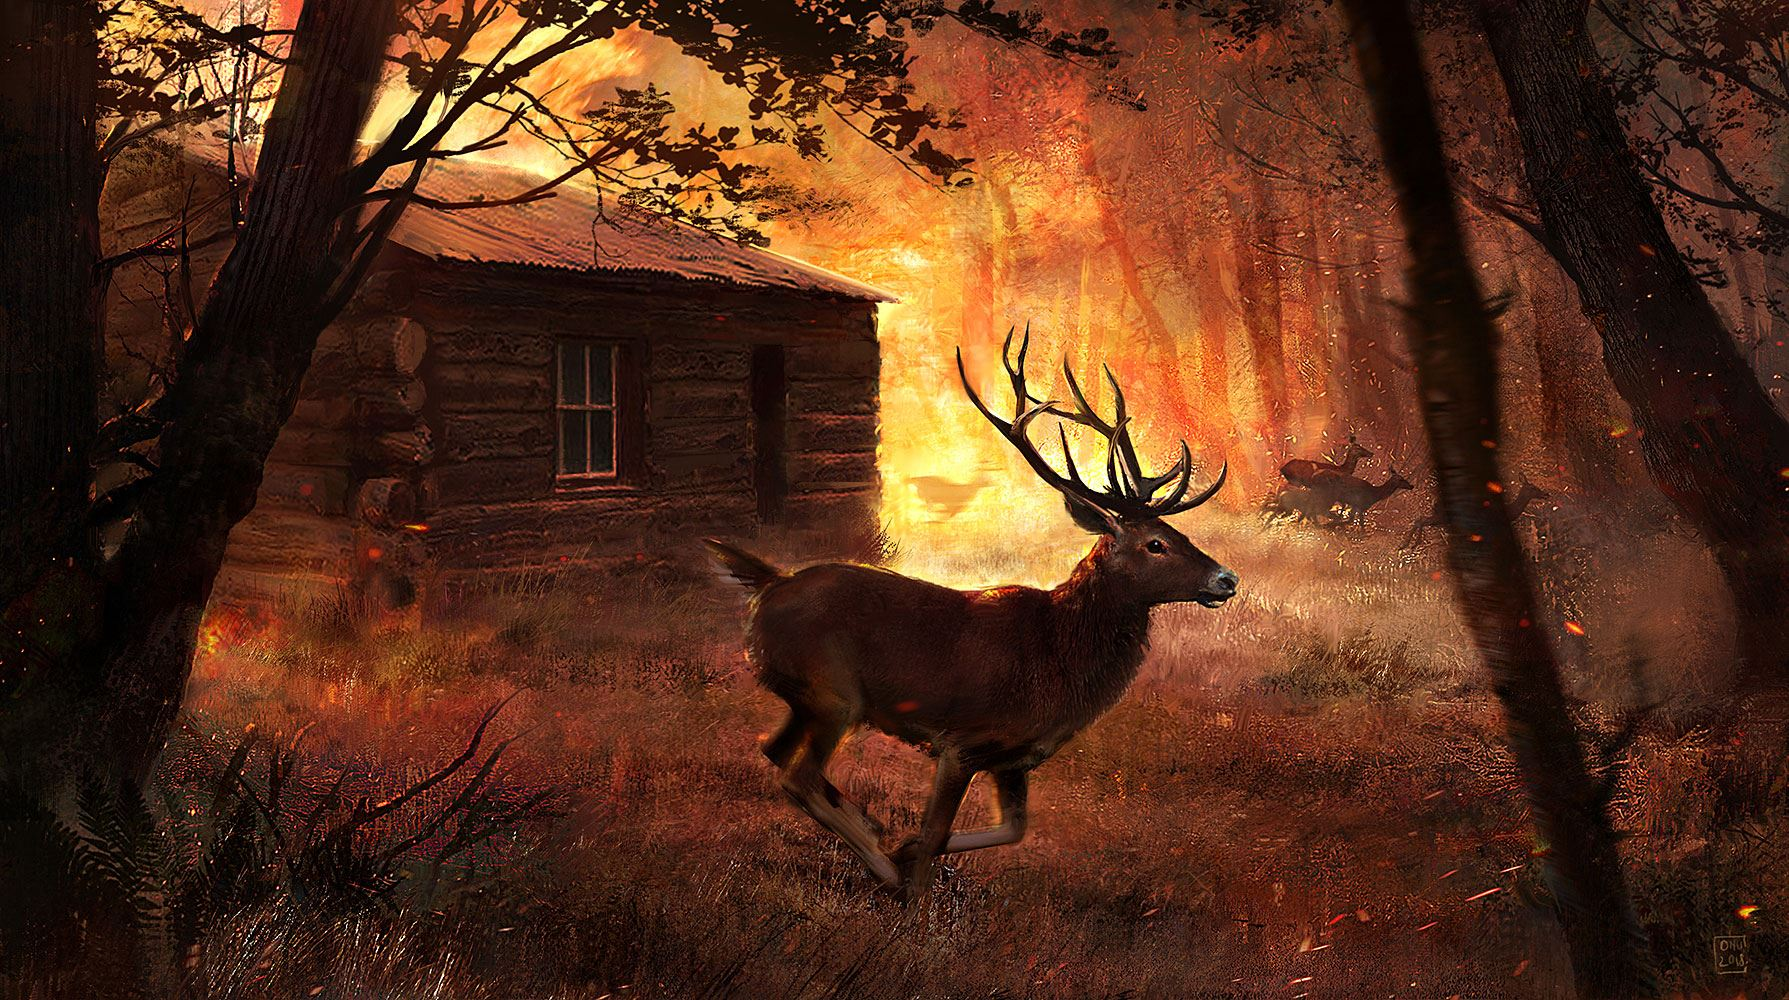 Digital illustration of a forest on fire, with a cabin in the background and a stag in the front.